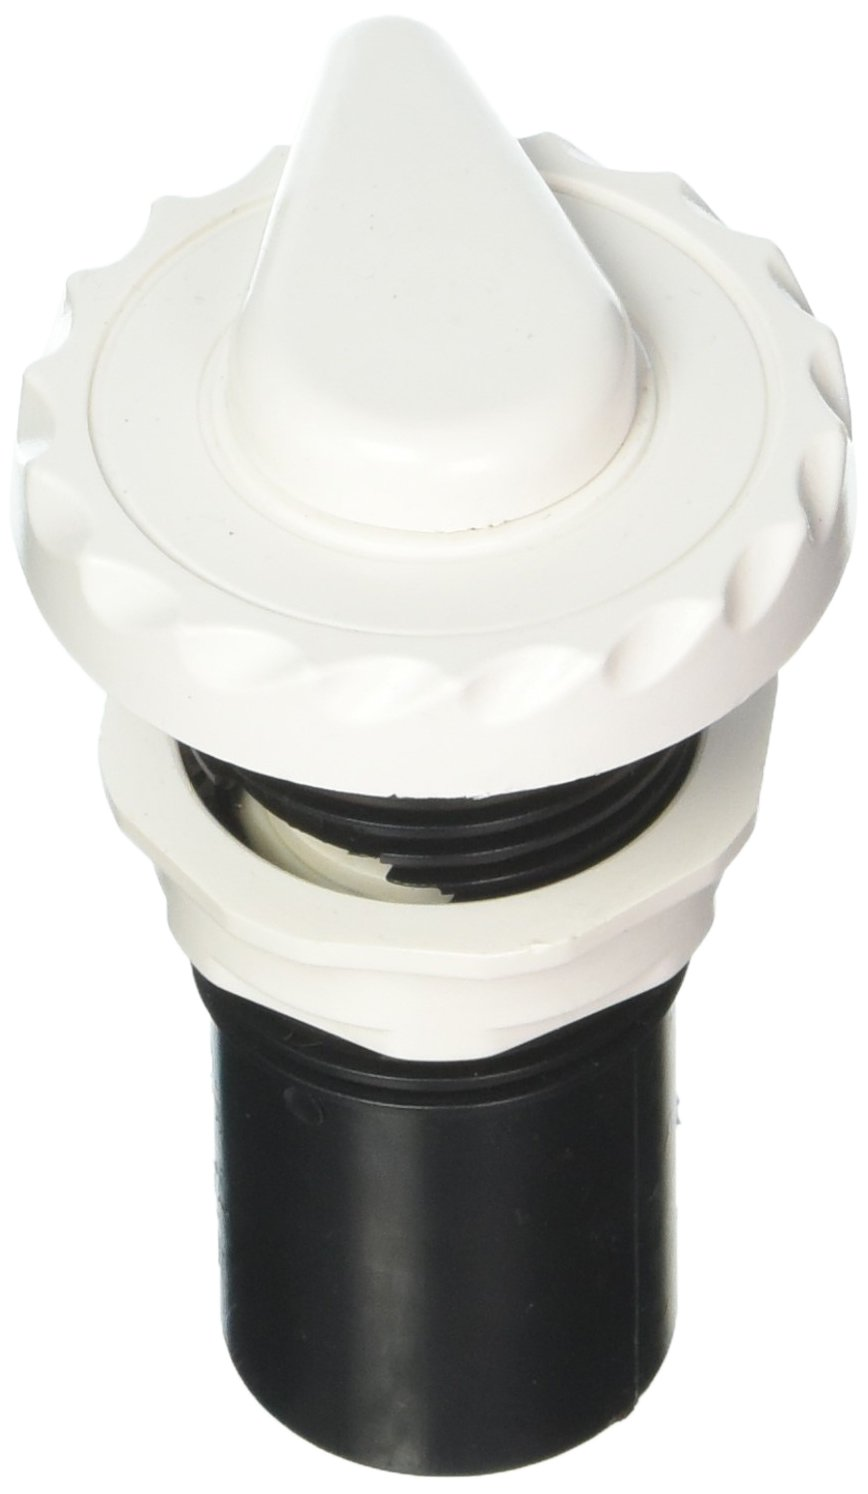 Waterway Plastics 806105115829 Scalloped White 1'' Top Access Silent Air Control